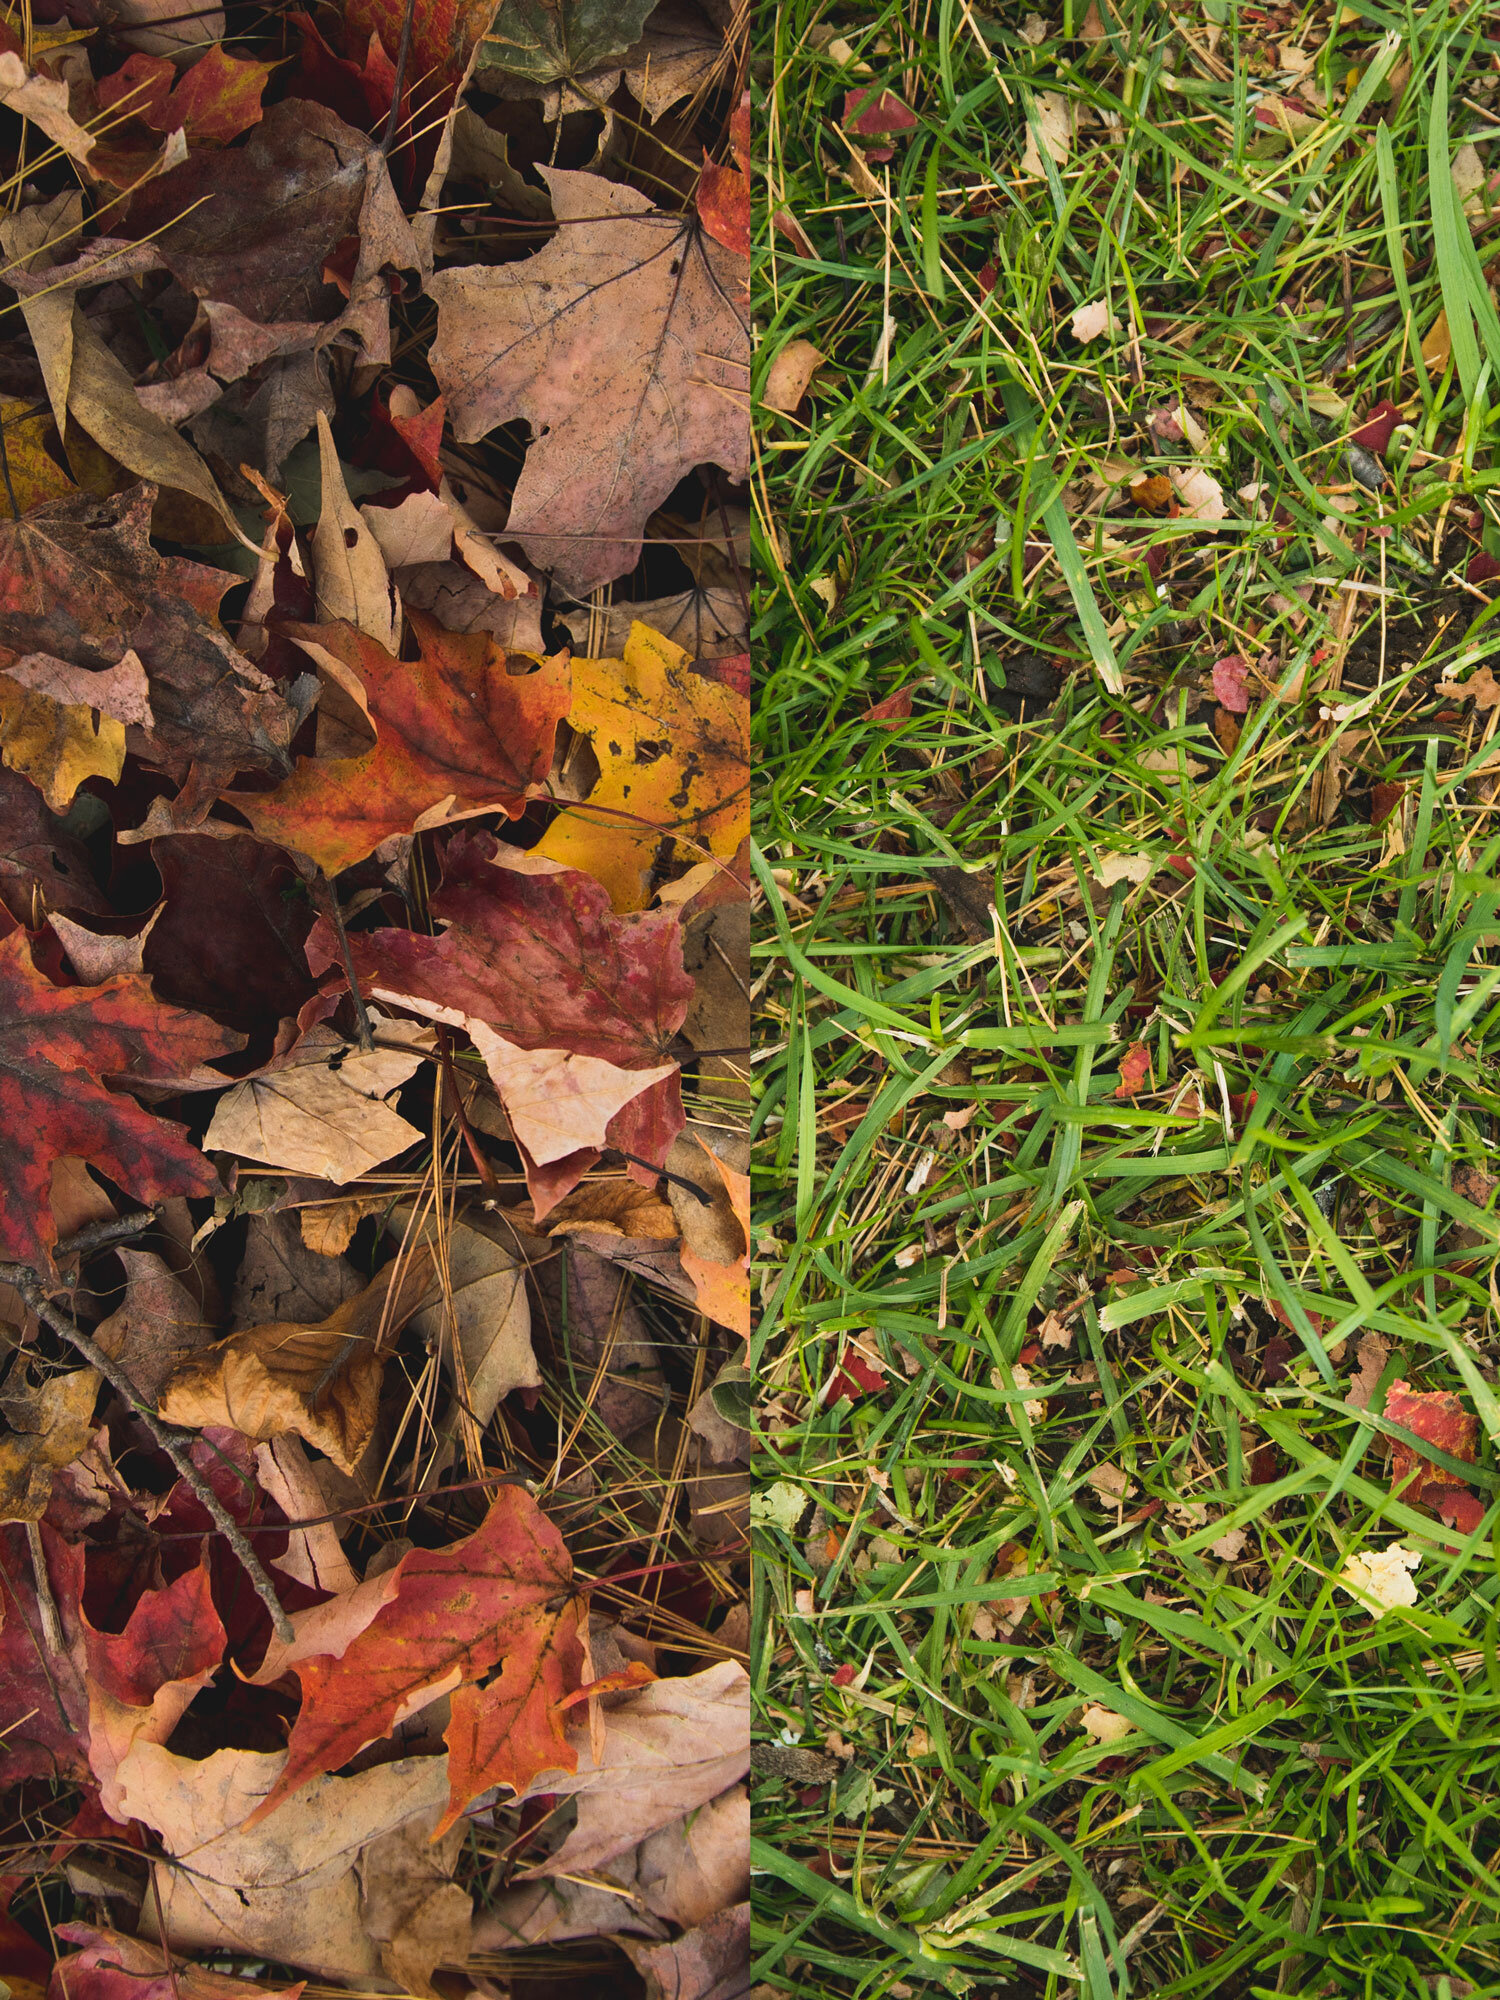 Save the Waste - Green Abundance offers an alternative to your standard fall clean up.Green Abundance recycles your leaves back into the landscape as a fine mulch. This removes their smothering characteristics and allows them to fertilize your existing lawn and gardens.By mulching leaves we speed up nature's process of cycling nutrients to help sustain the health of your garden's plants and the microbiology of the soil.